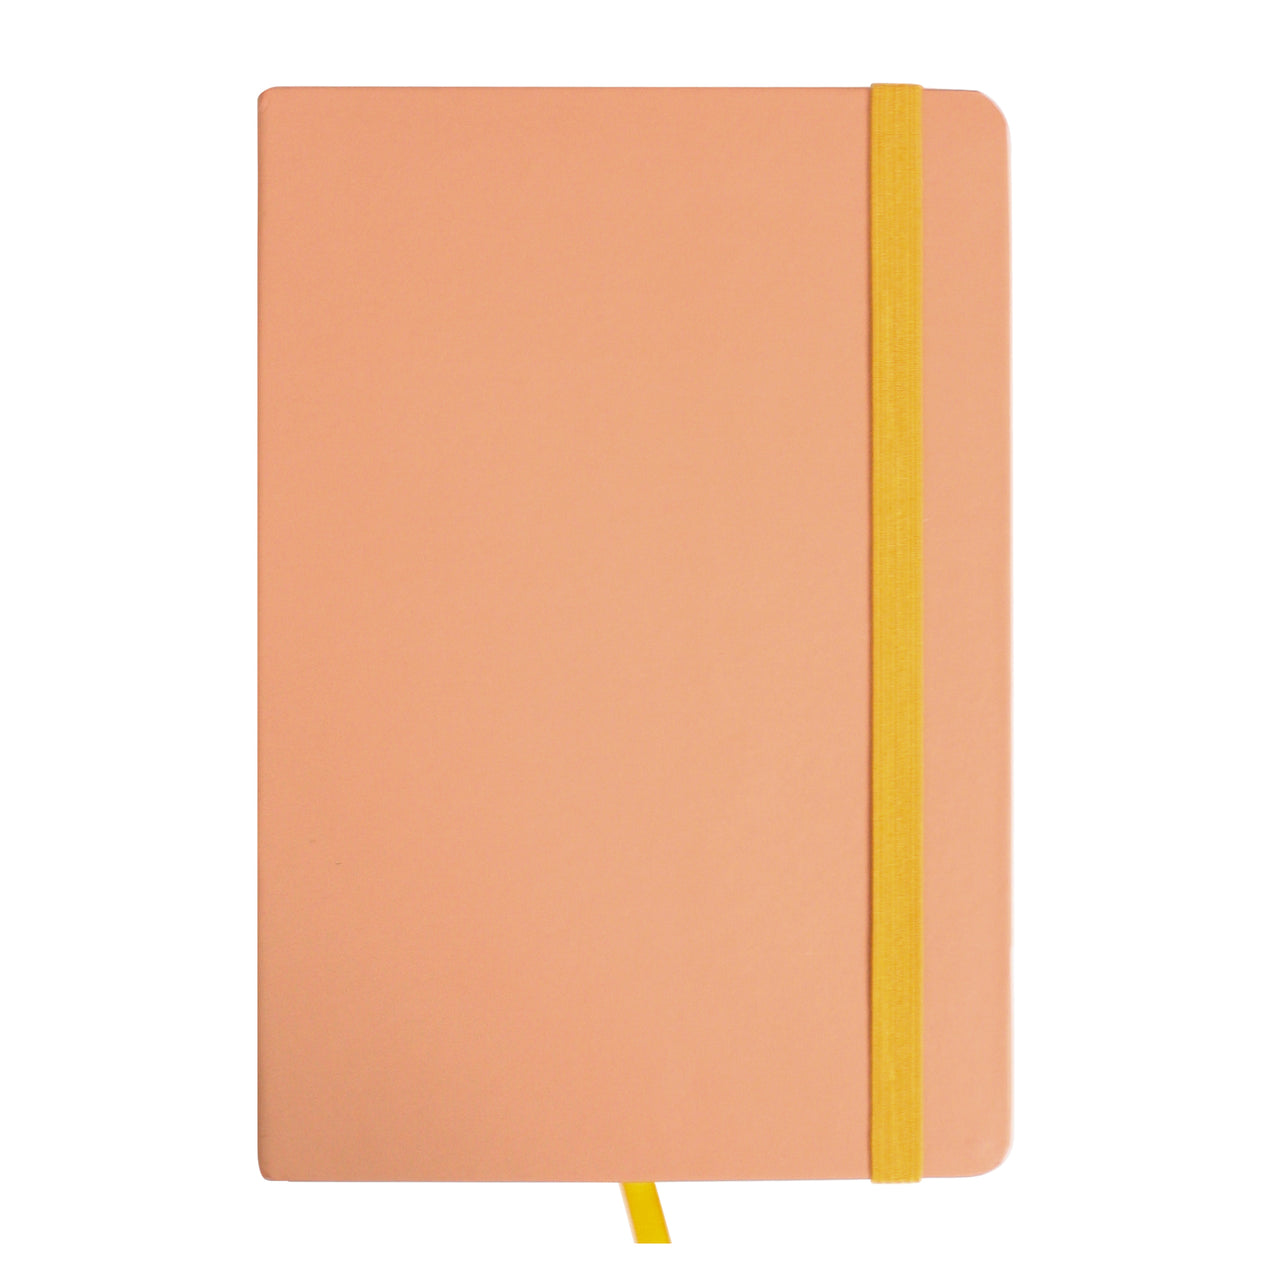 A5 Pastel Notebook - Peach - EMARTBUY